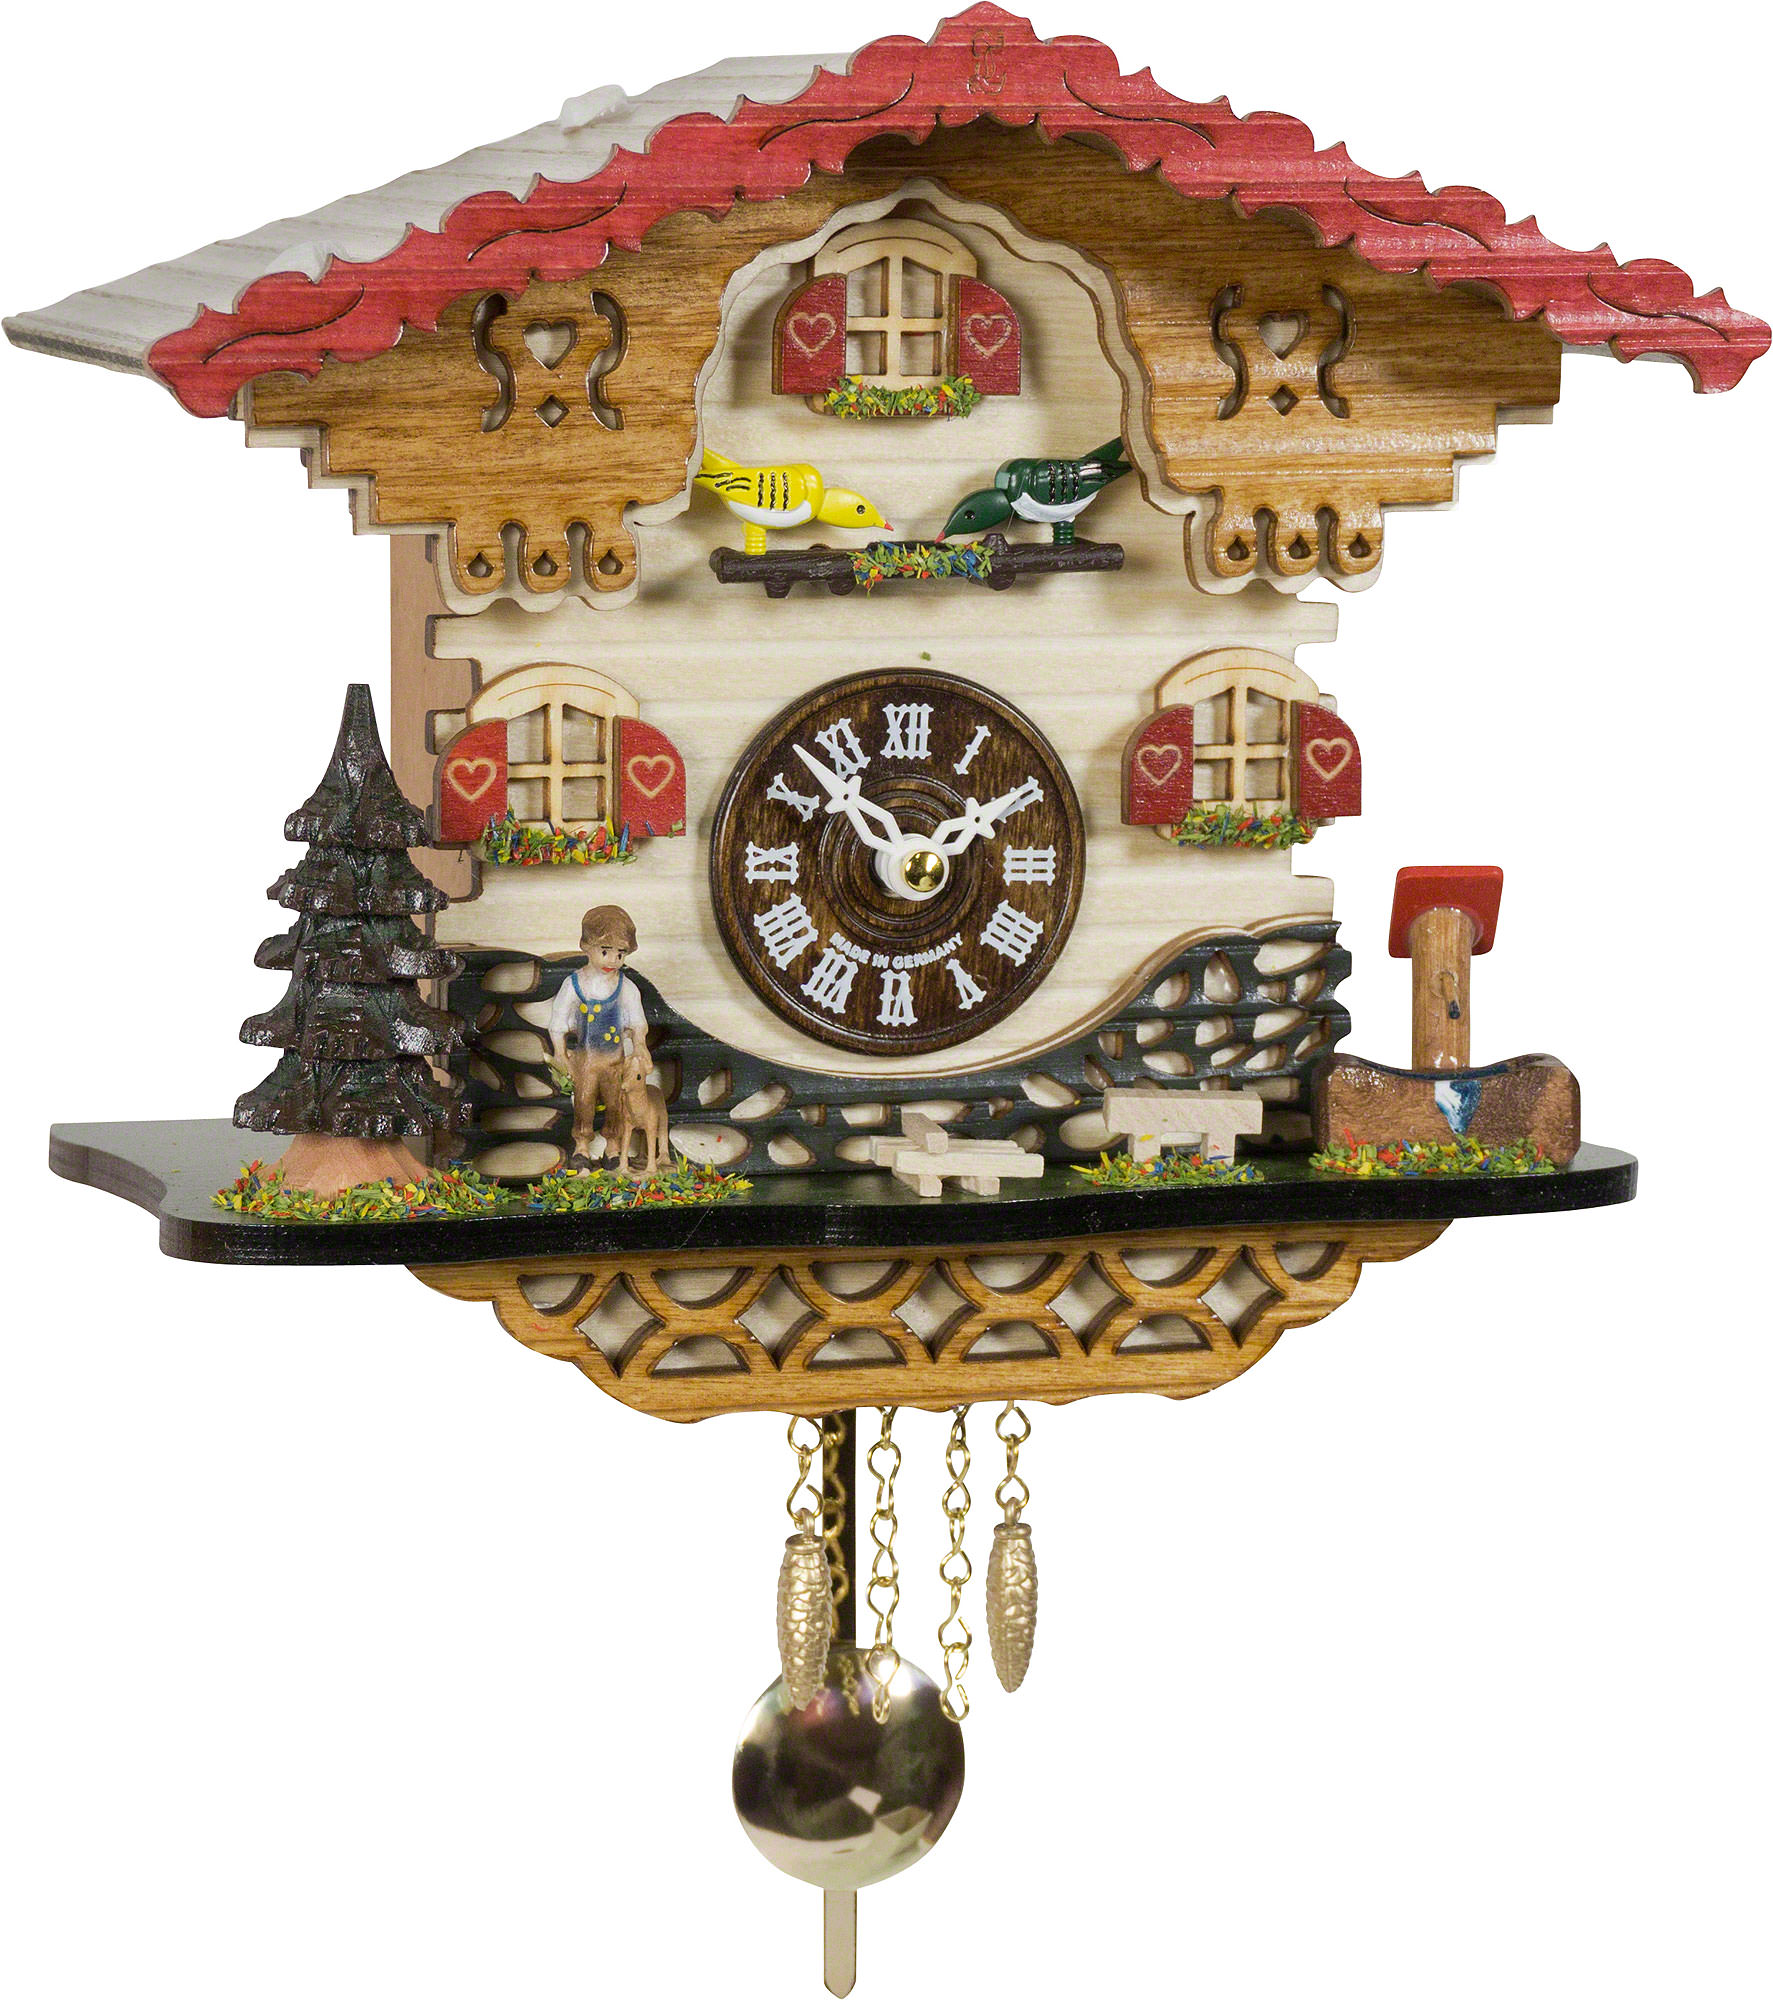 Cuckoo clock quartz movement black forest pendulum clock style 20cm by trenkle uhren 2058 pq - Cuckoo clock pendulum ...